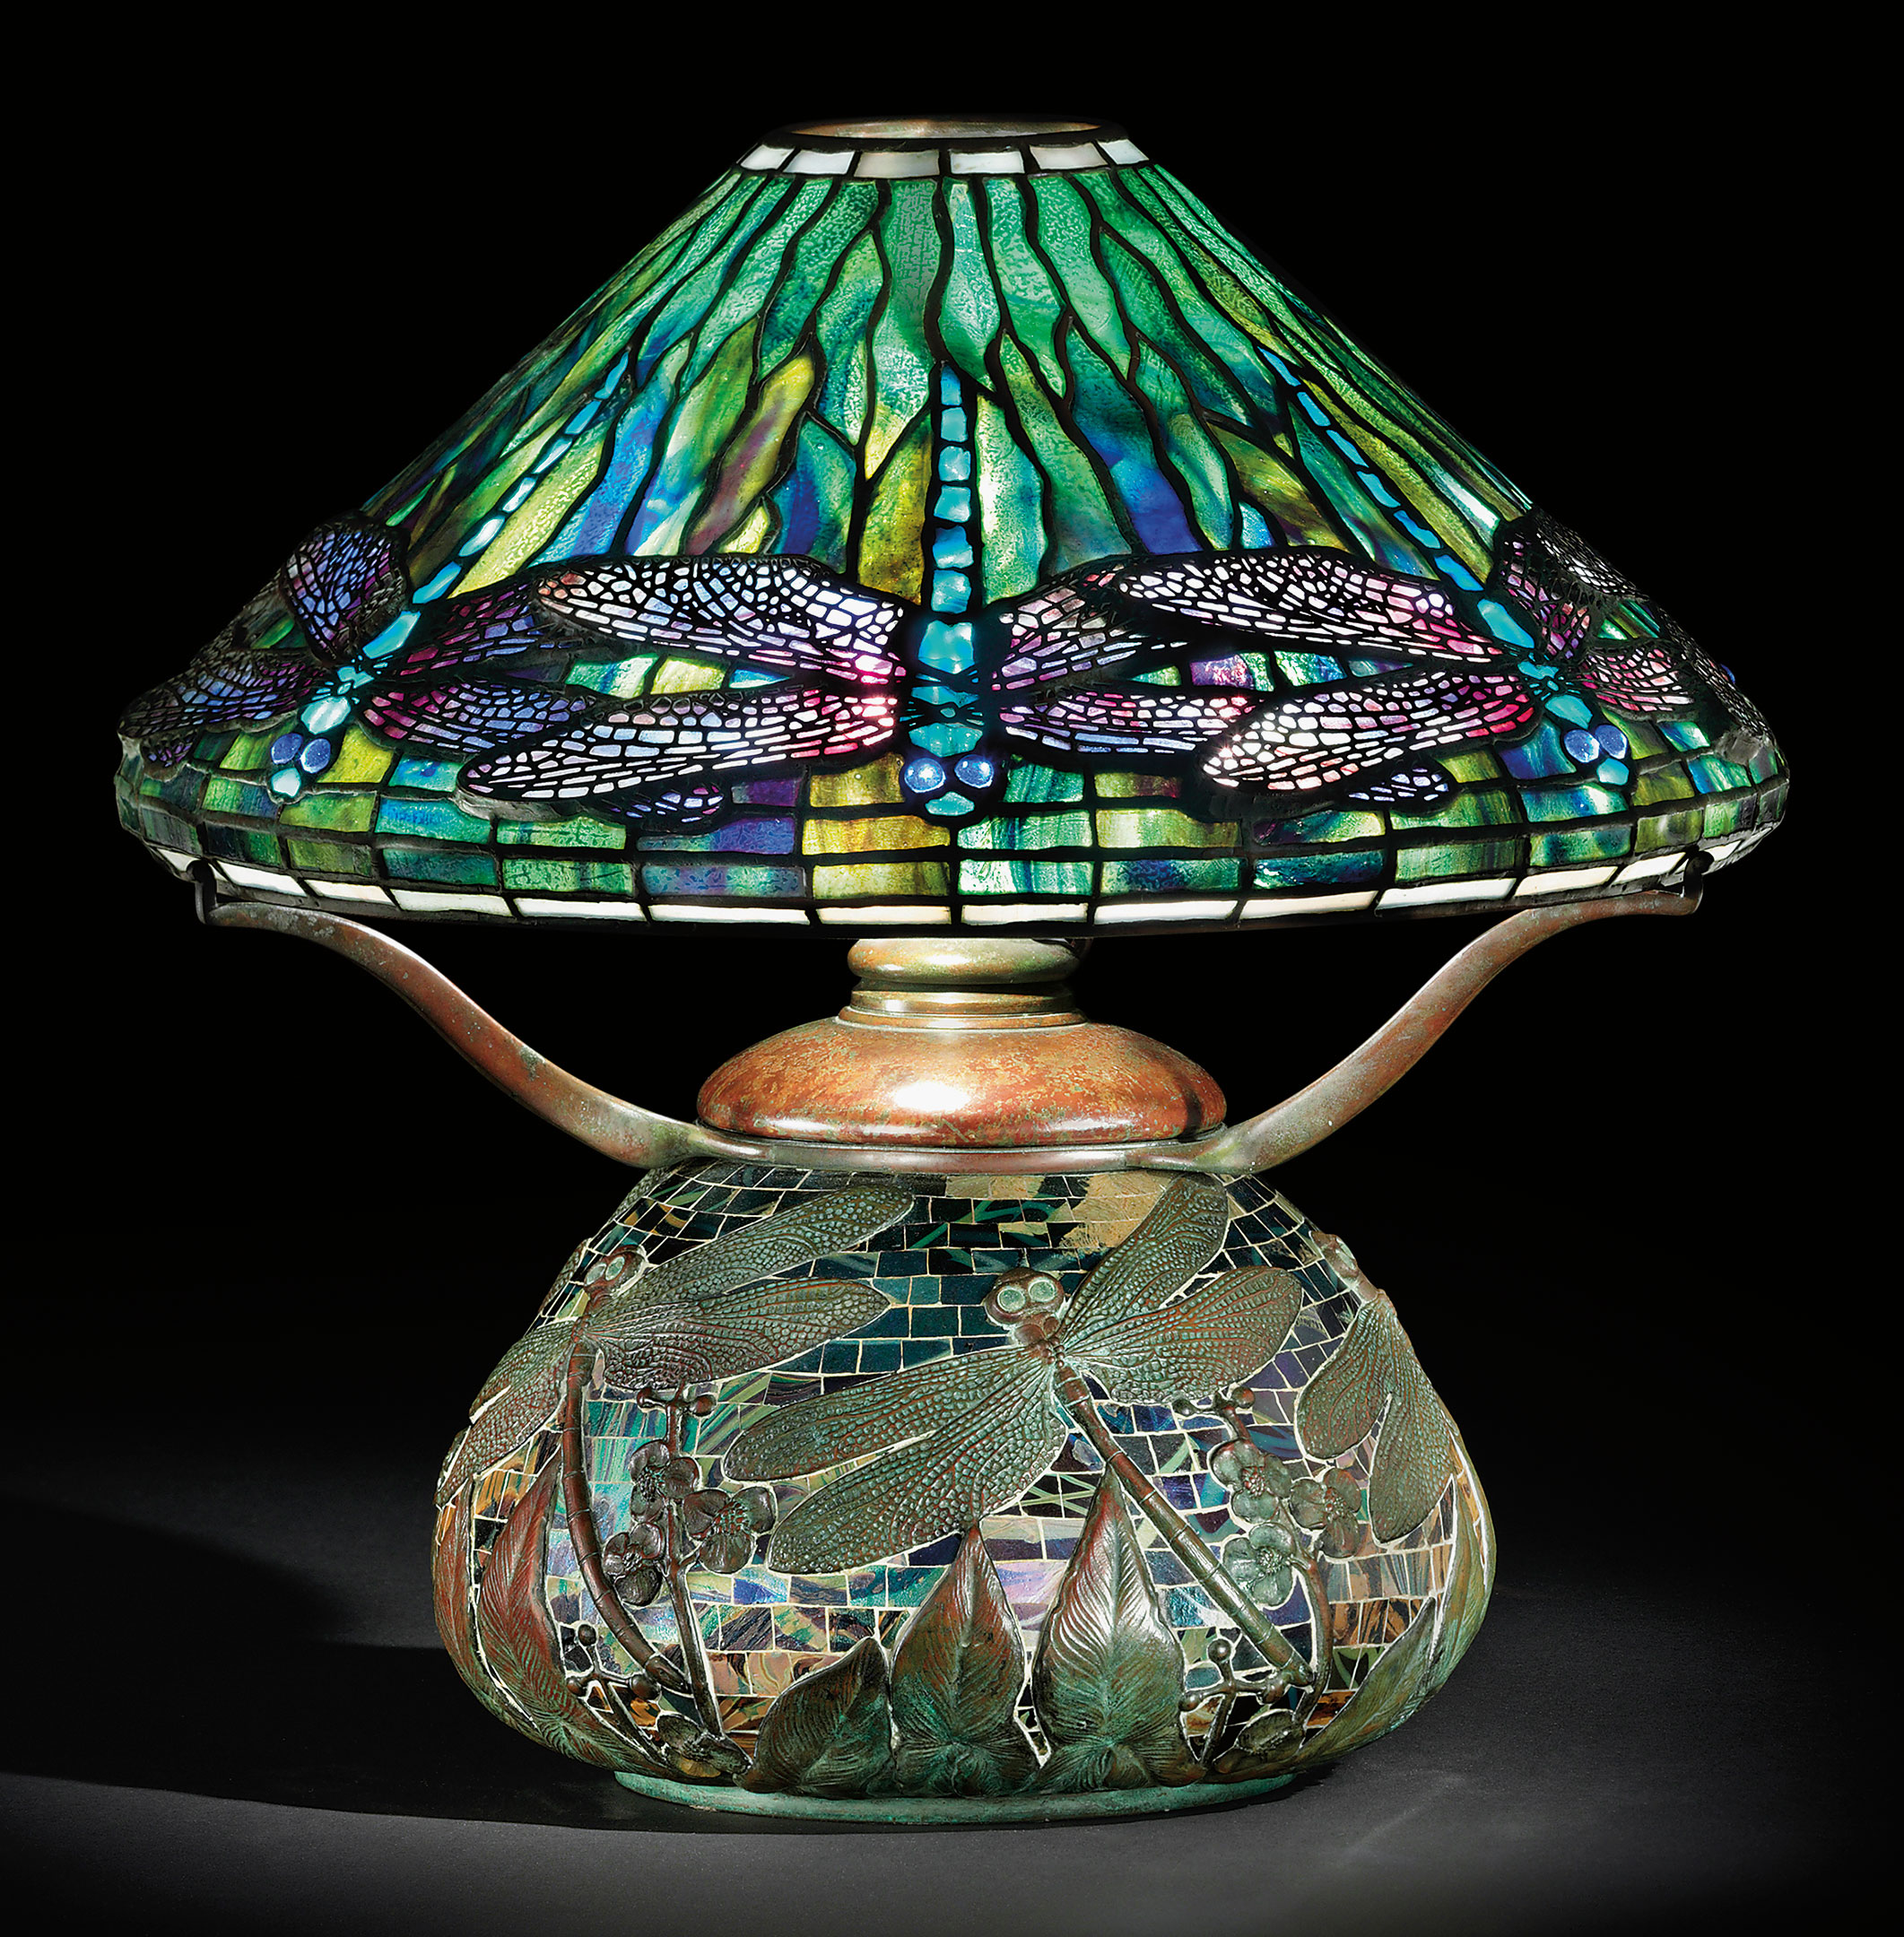 Tiffany lamps: 10 things you need to know | Christie's